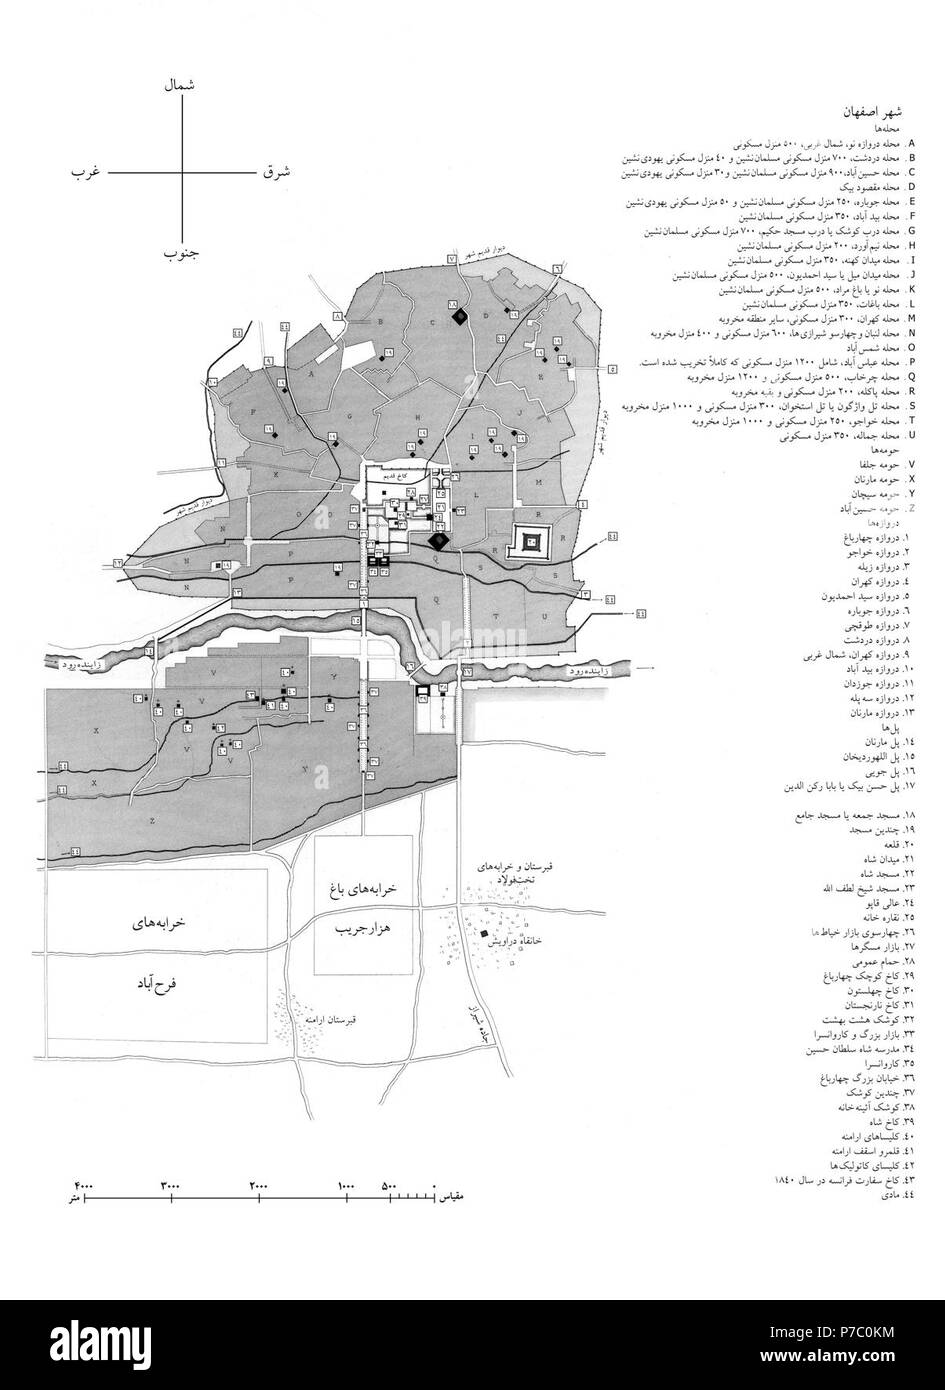 19th century map of isfahan Stock Photo: 211090984 - Alamy